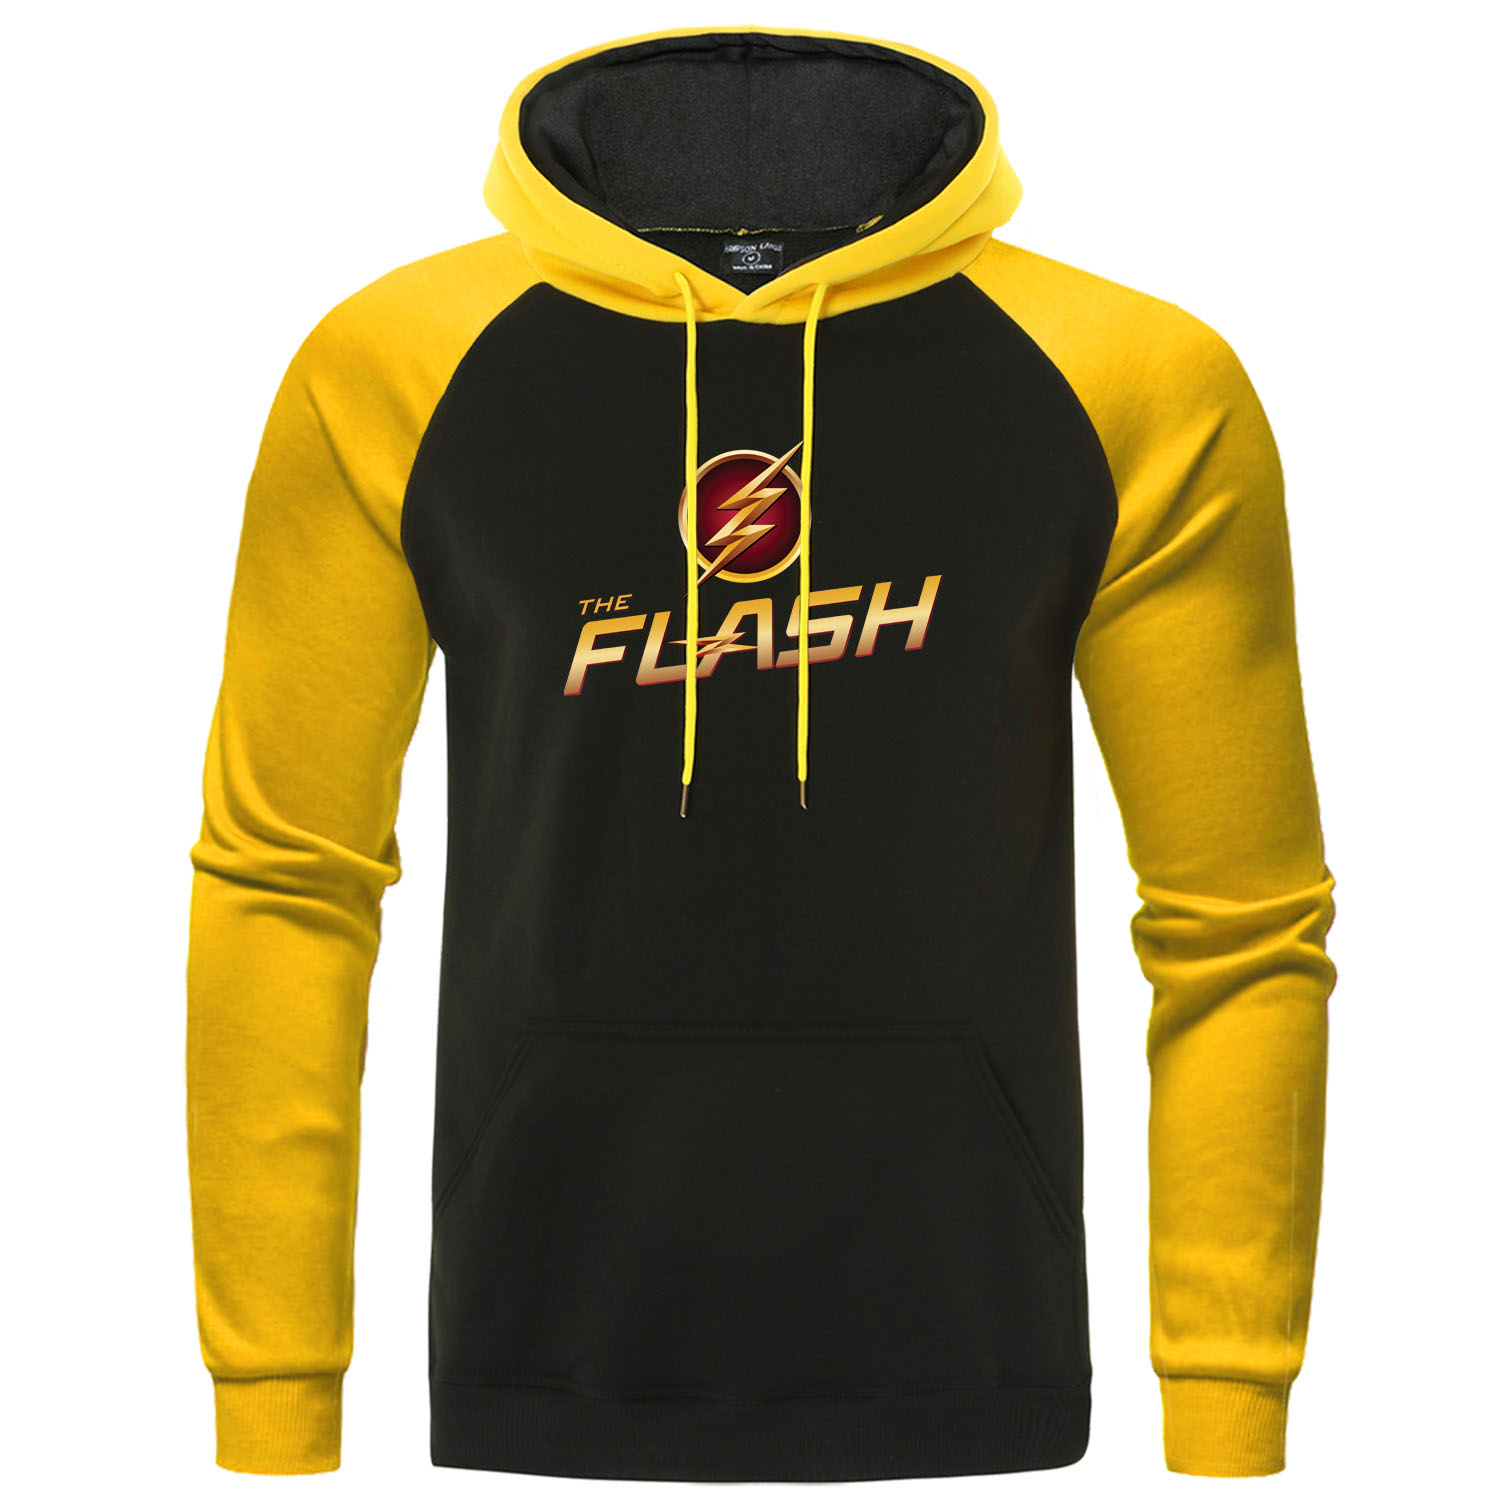 The Flash Print Men Hoodies The BIG BANG Theory Sweatshirt Raglan Casual Pullover Autumn Brand Men's Clothing Superhero Hoody